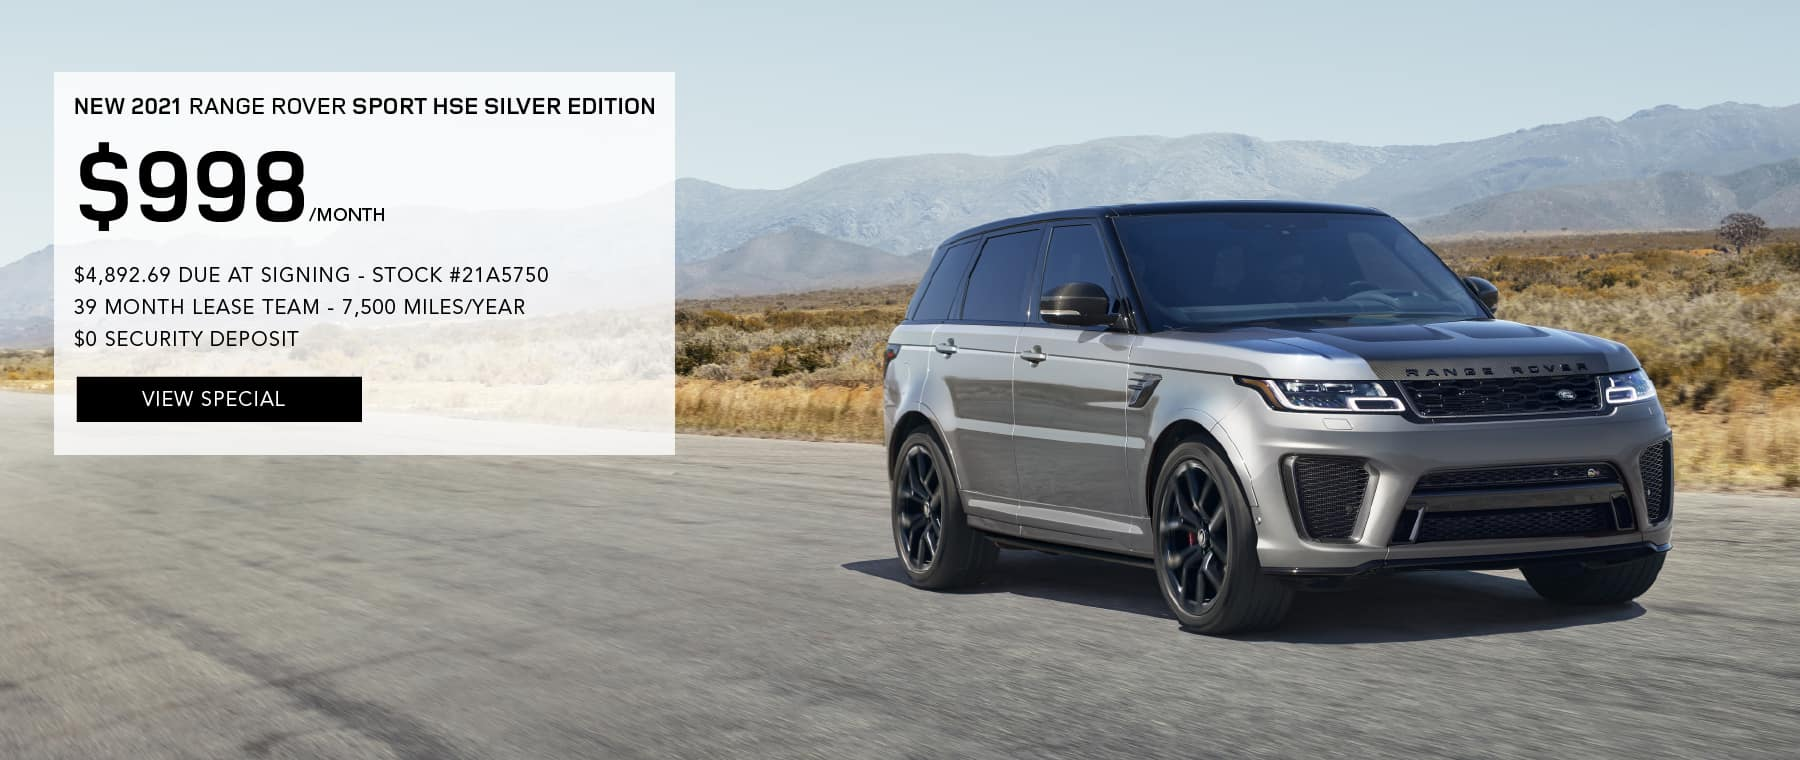 2021 RANGE ROVER SPORT SILVER EDITION. $998 PER MONTH FOR 39 MONTHS. $4,892.69 DUE AT SIGNING. STOCK #21A5750. 7,500 MILES/YEAR. $0 SECURITY DEPOSIT. VIEW SPECIAL. SILVER RANGE ROVER SPORT DRIVING THROUGH DESERT.